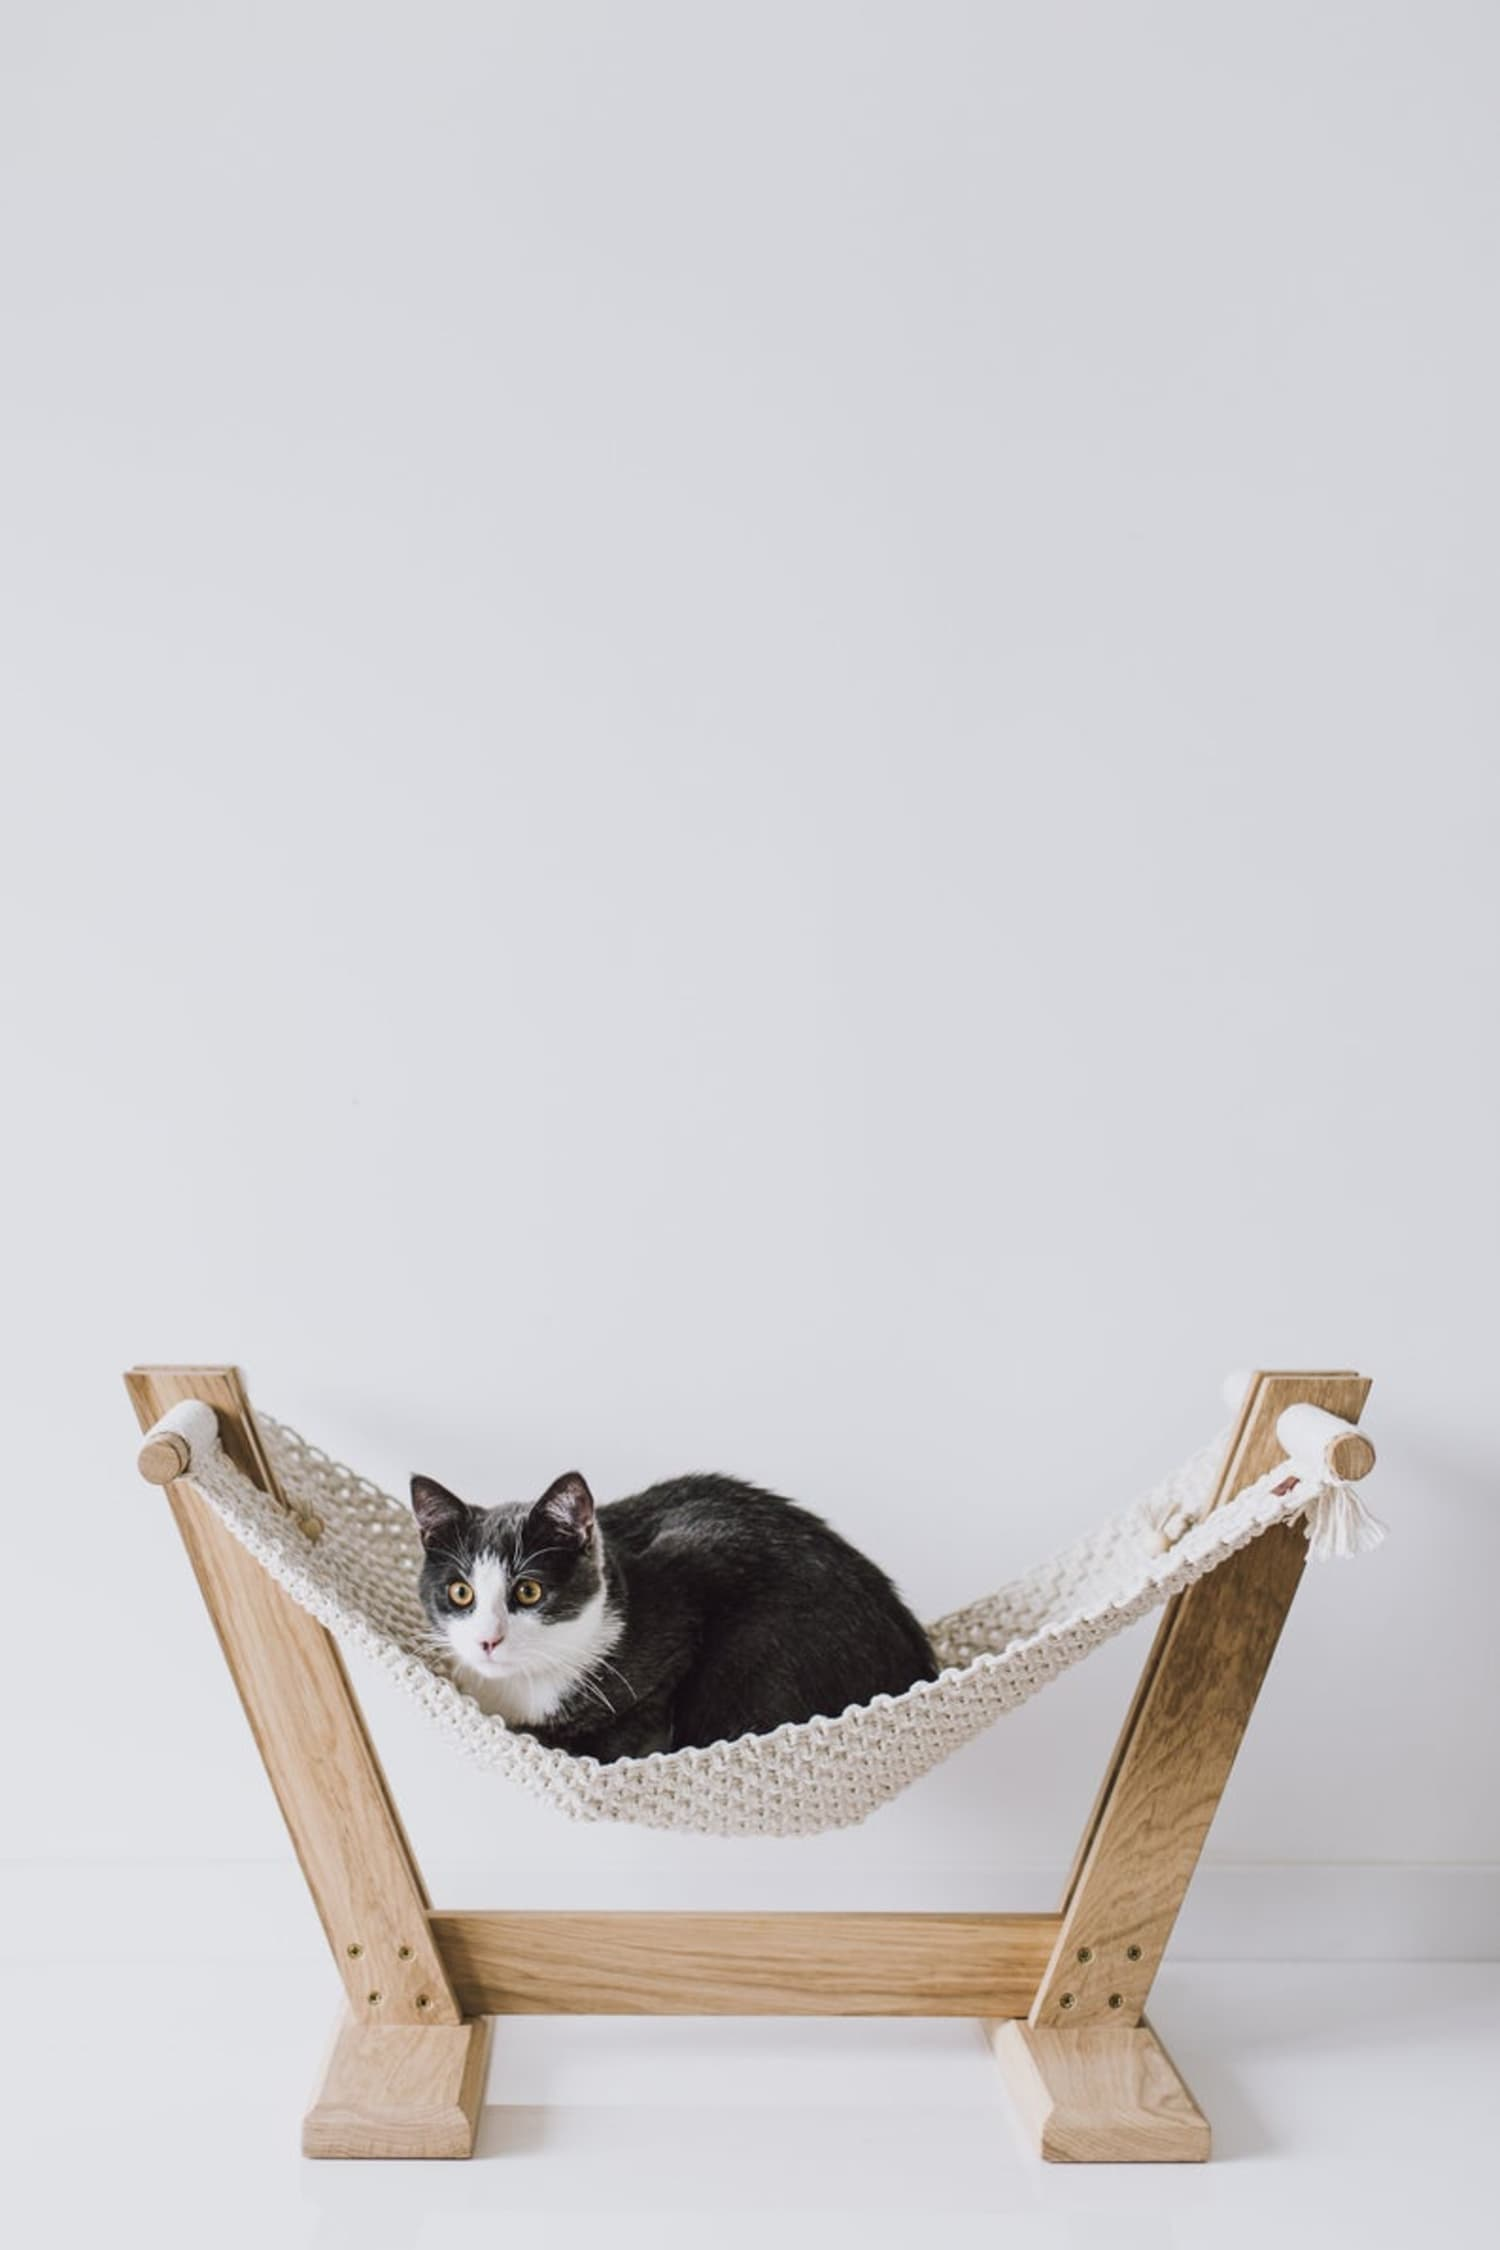 Complement Your Boho Cat's Aesthetic With This Macrame Cat Hammock